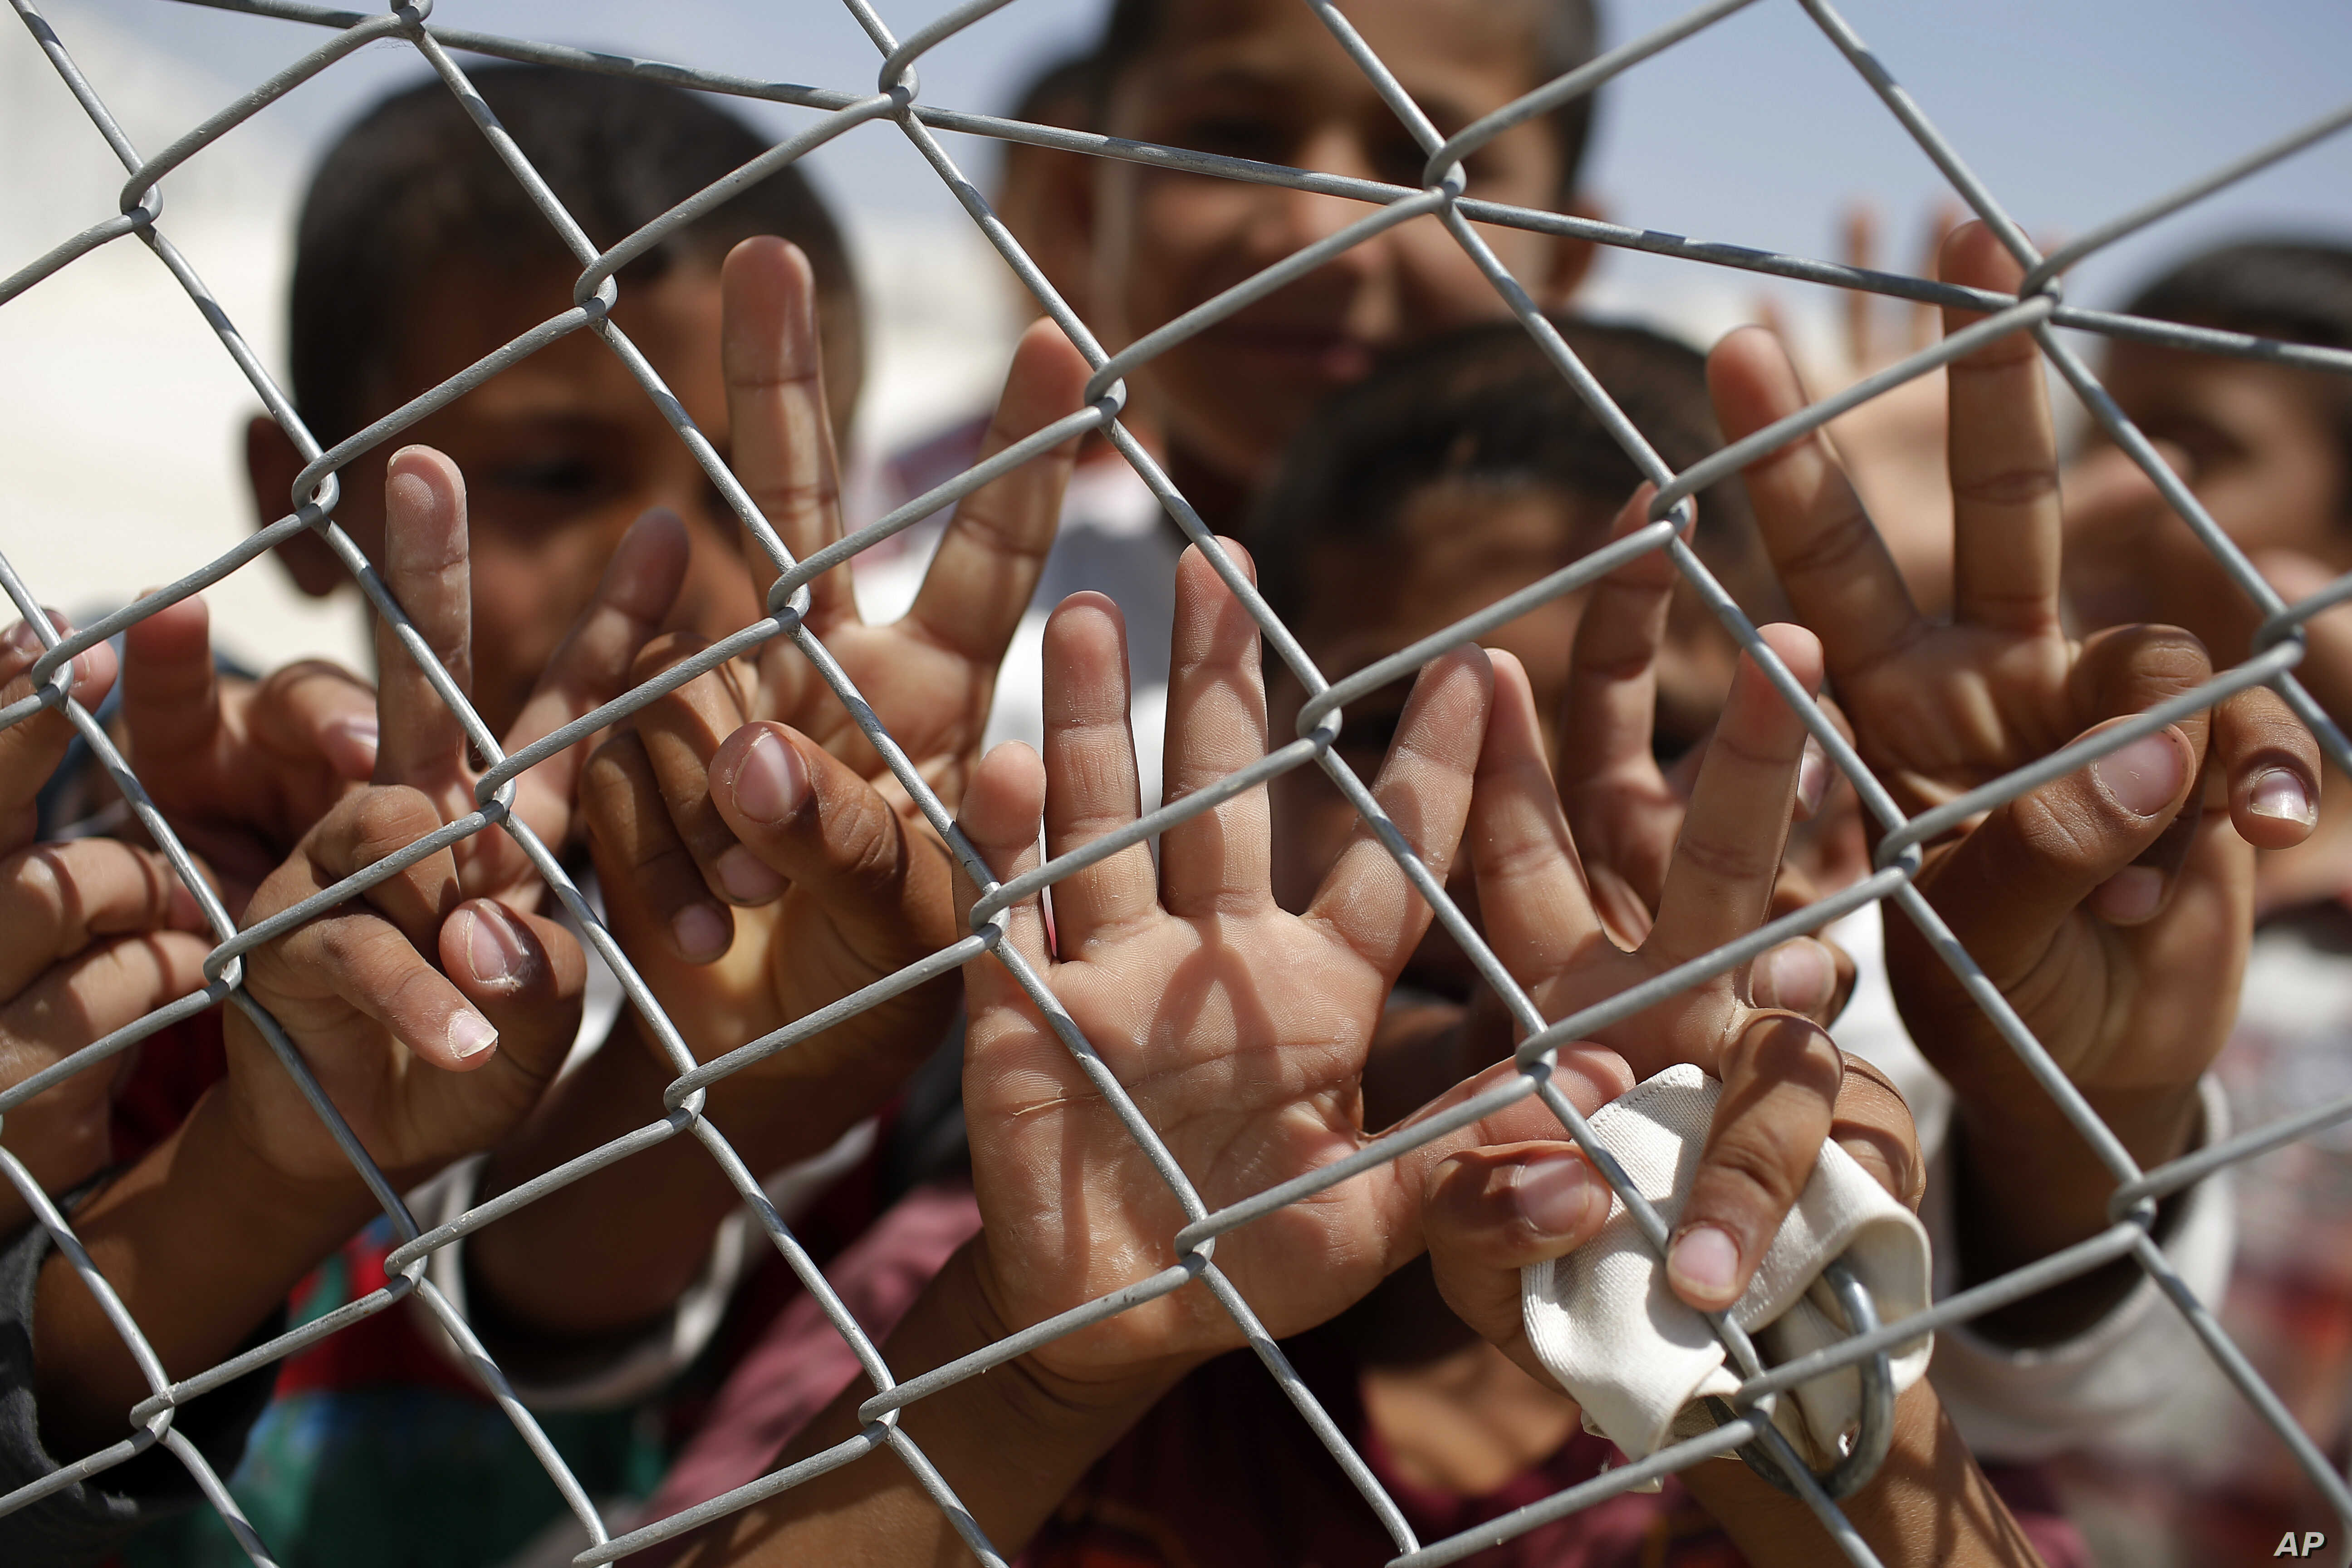 FILE - Syrian refugee children wave and flash the V-sign at a refugee camp in Suruc, on the Turkey-Syria border, June 19, 2015.